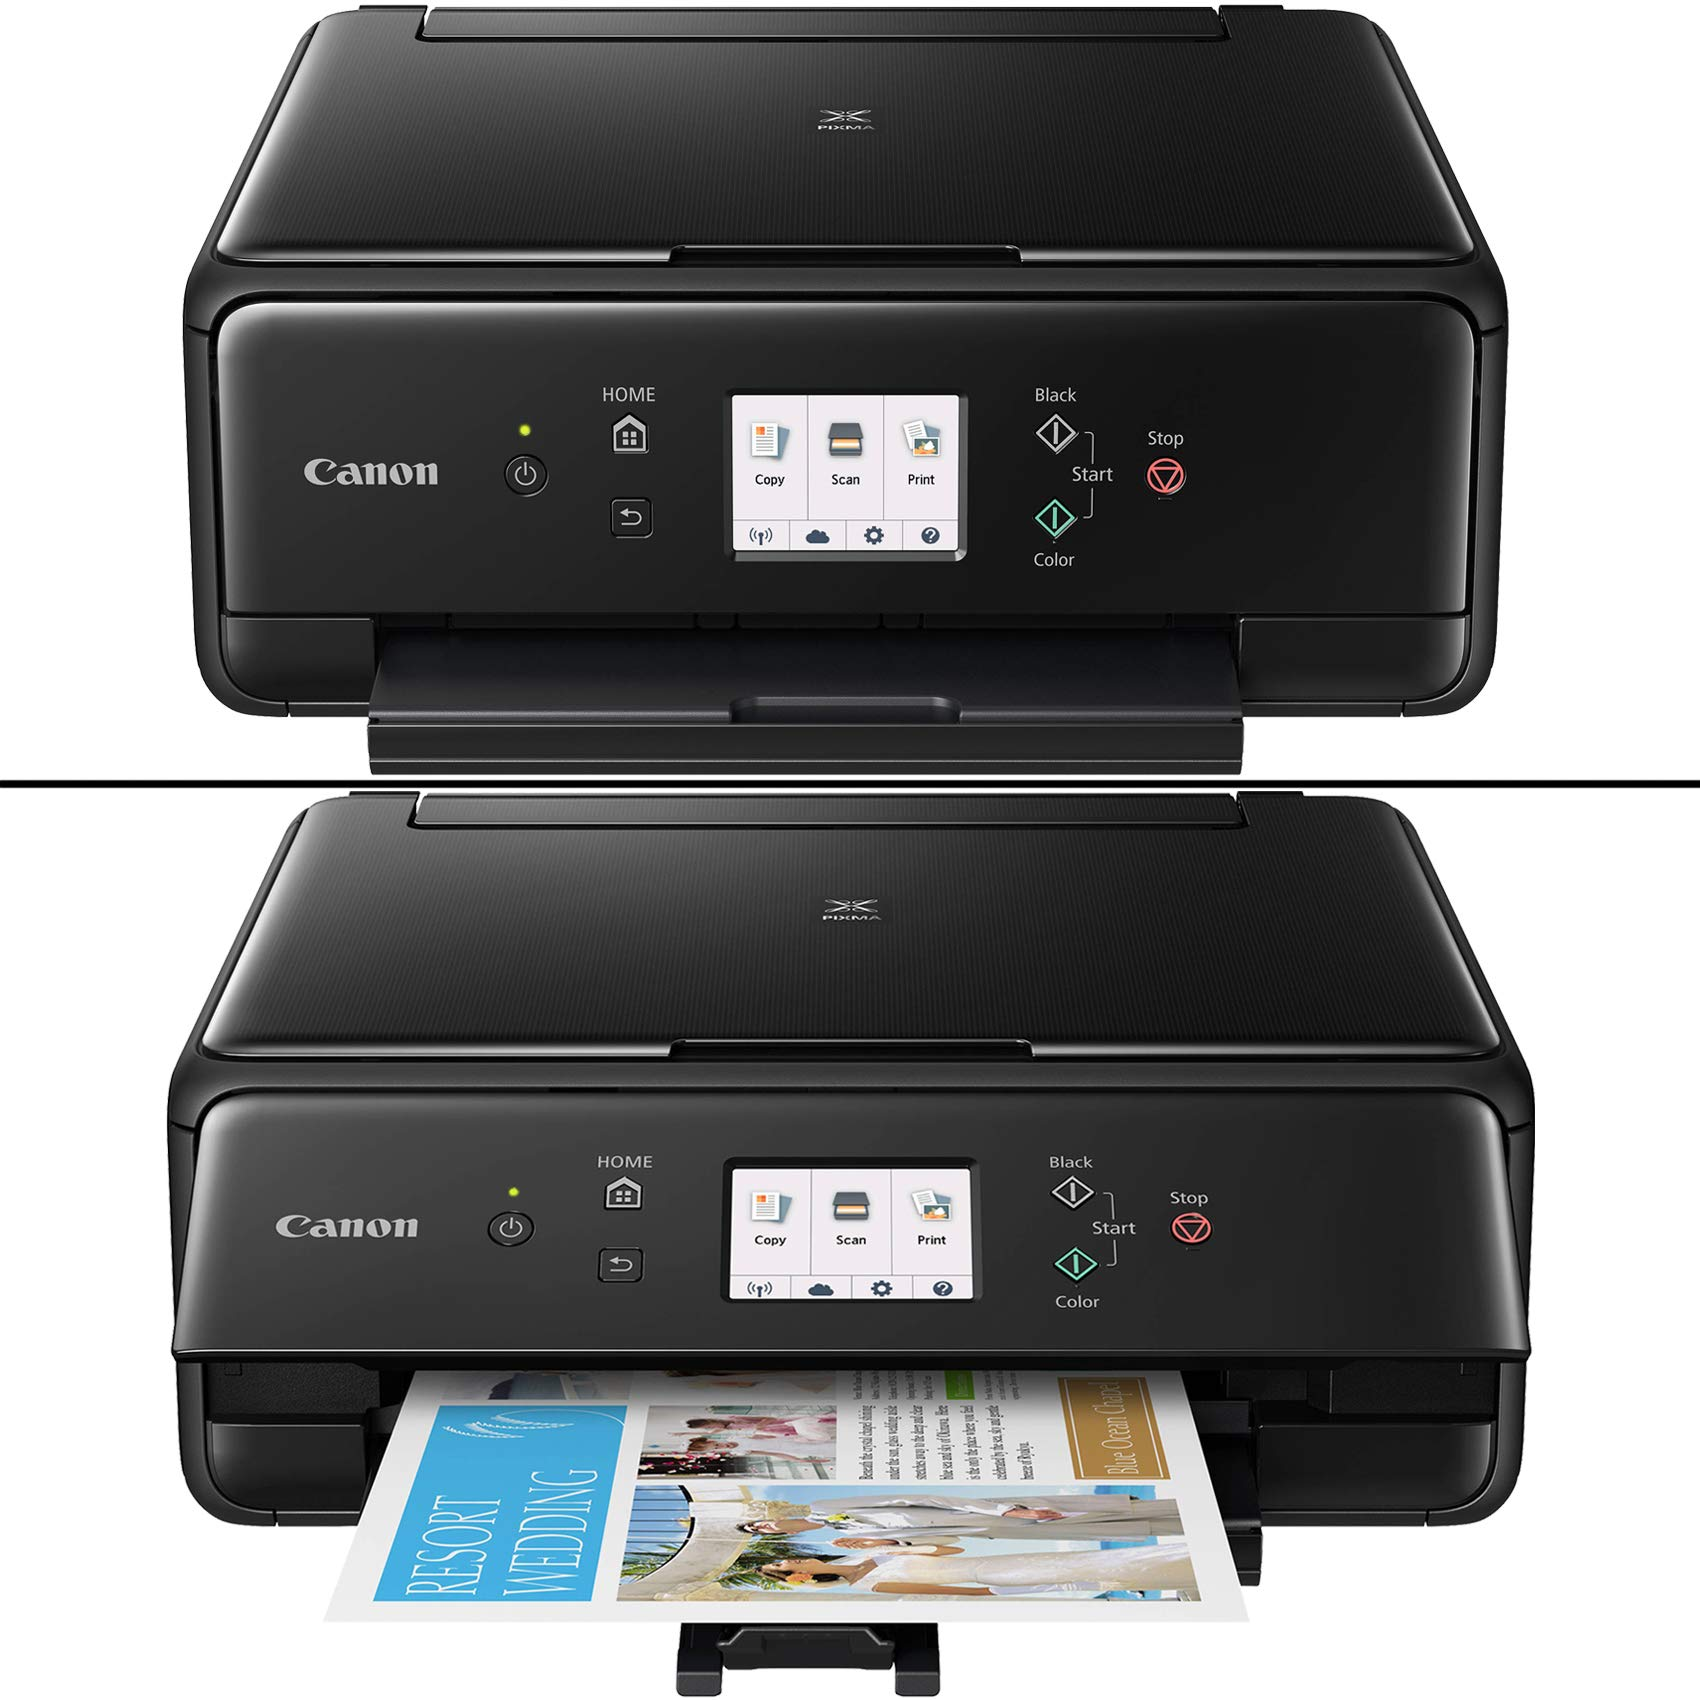 Canon Pixma TS6120 Wireless Inkjet All-in one Printer (Black) with Scan, Copy, Mobile Printing, Airprint & Google Cloud + Set of Ink Tanks + Photo Paper (100 Pack) + USB Printer Cable + HeroFiber by HeroFiber (Image #2)